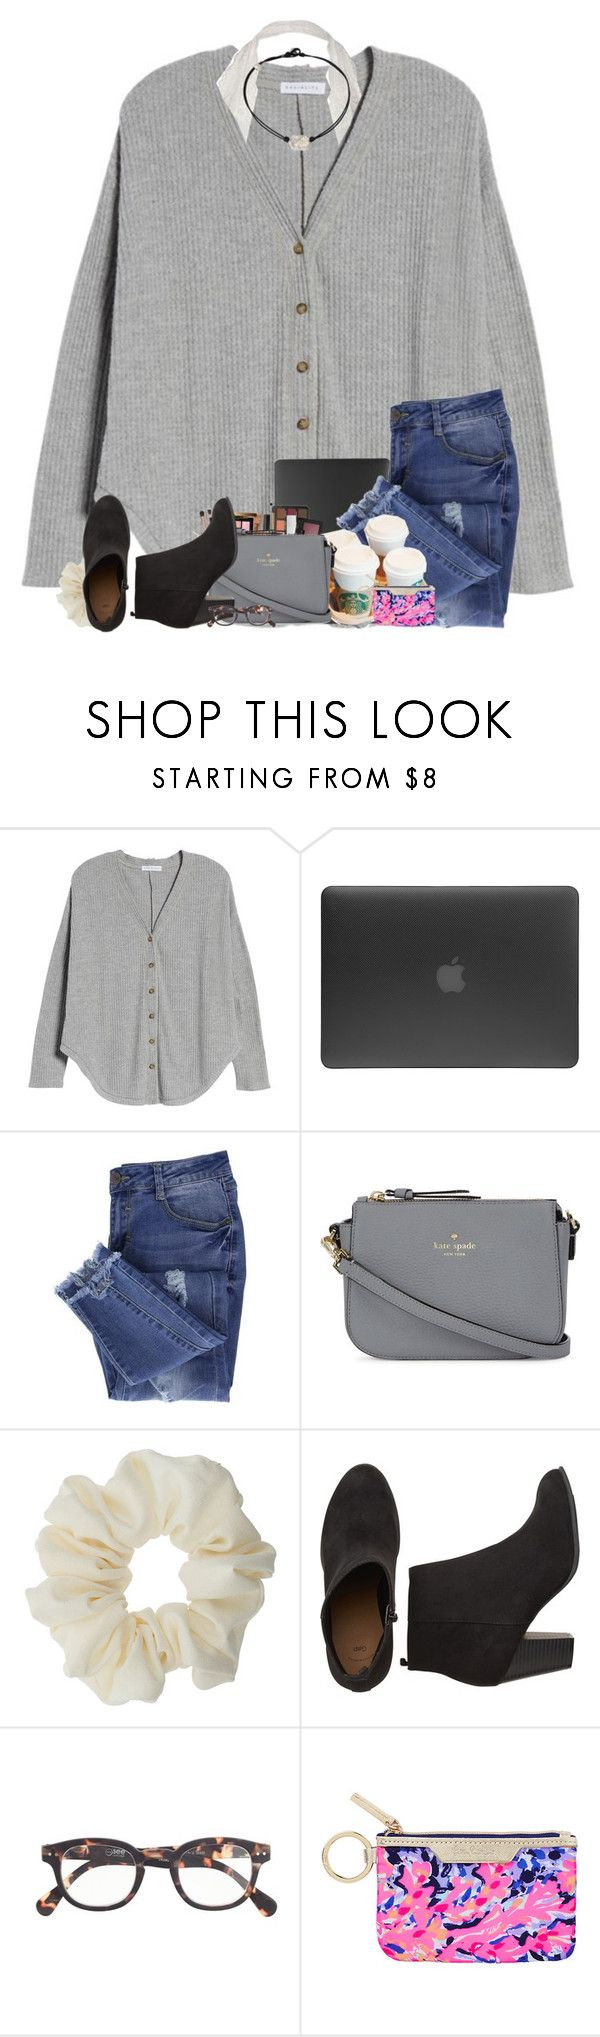 """""""how do y'all feel about this whole thermal trend?"""" by j-prepp ❤ liked on Polyvore featuring Socialite, Incase, Essie, Kate Spade, Miss Selfridge, J.Crew and Lilly Pulitzer"""